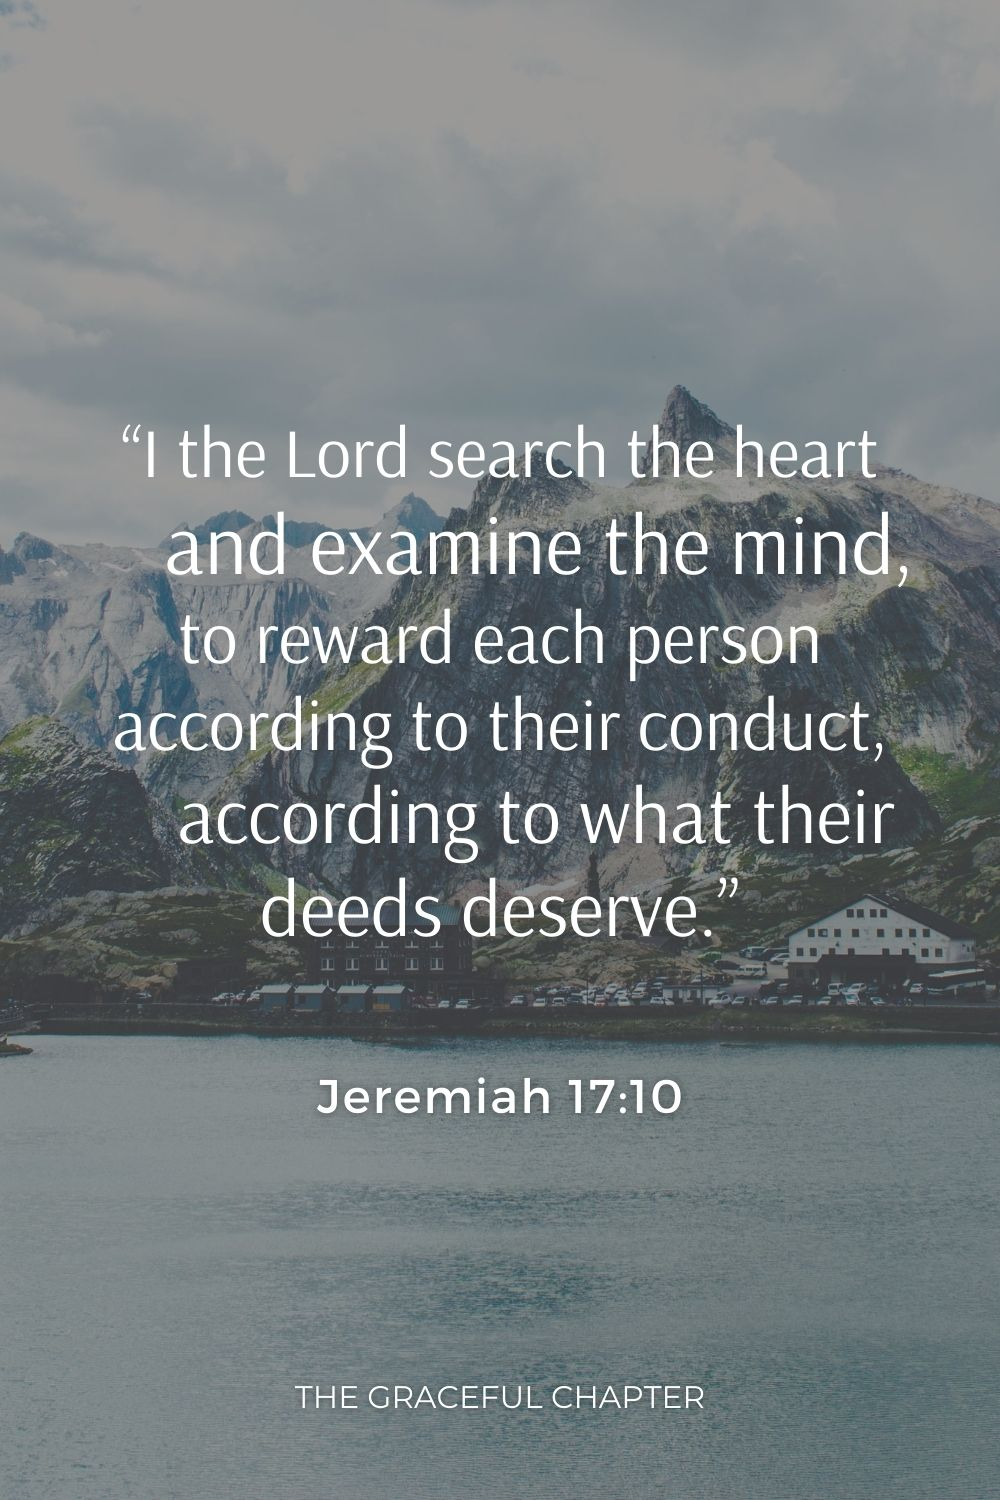 """""""I the Lord search the heart     and examine the mind, to reward each person according to their conduct,     according to what their deeds deserve.""""""""I the Lord search the heart     and examine the mind, to reward each person according to their conduct,     according to what their deeds deserve."""" Jeremiah 17:10"""